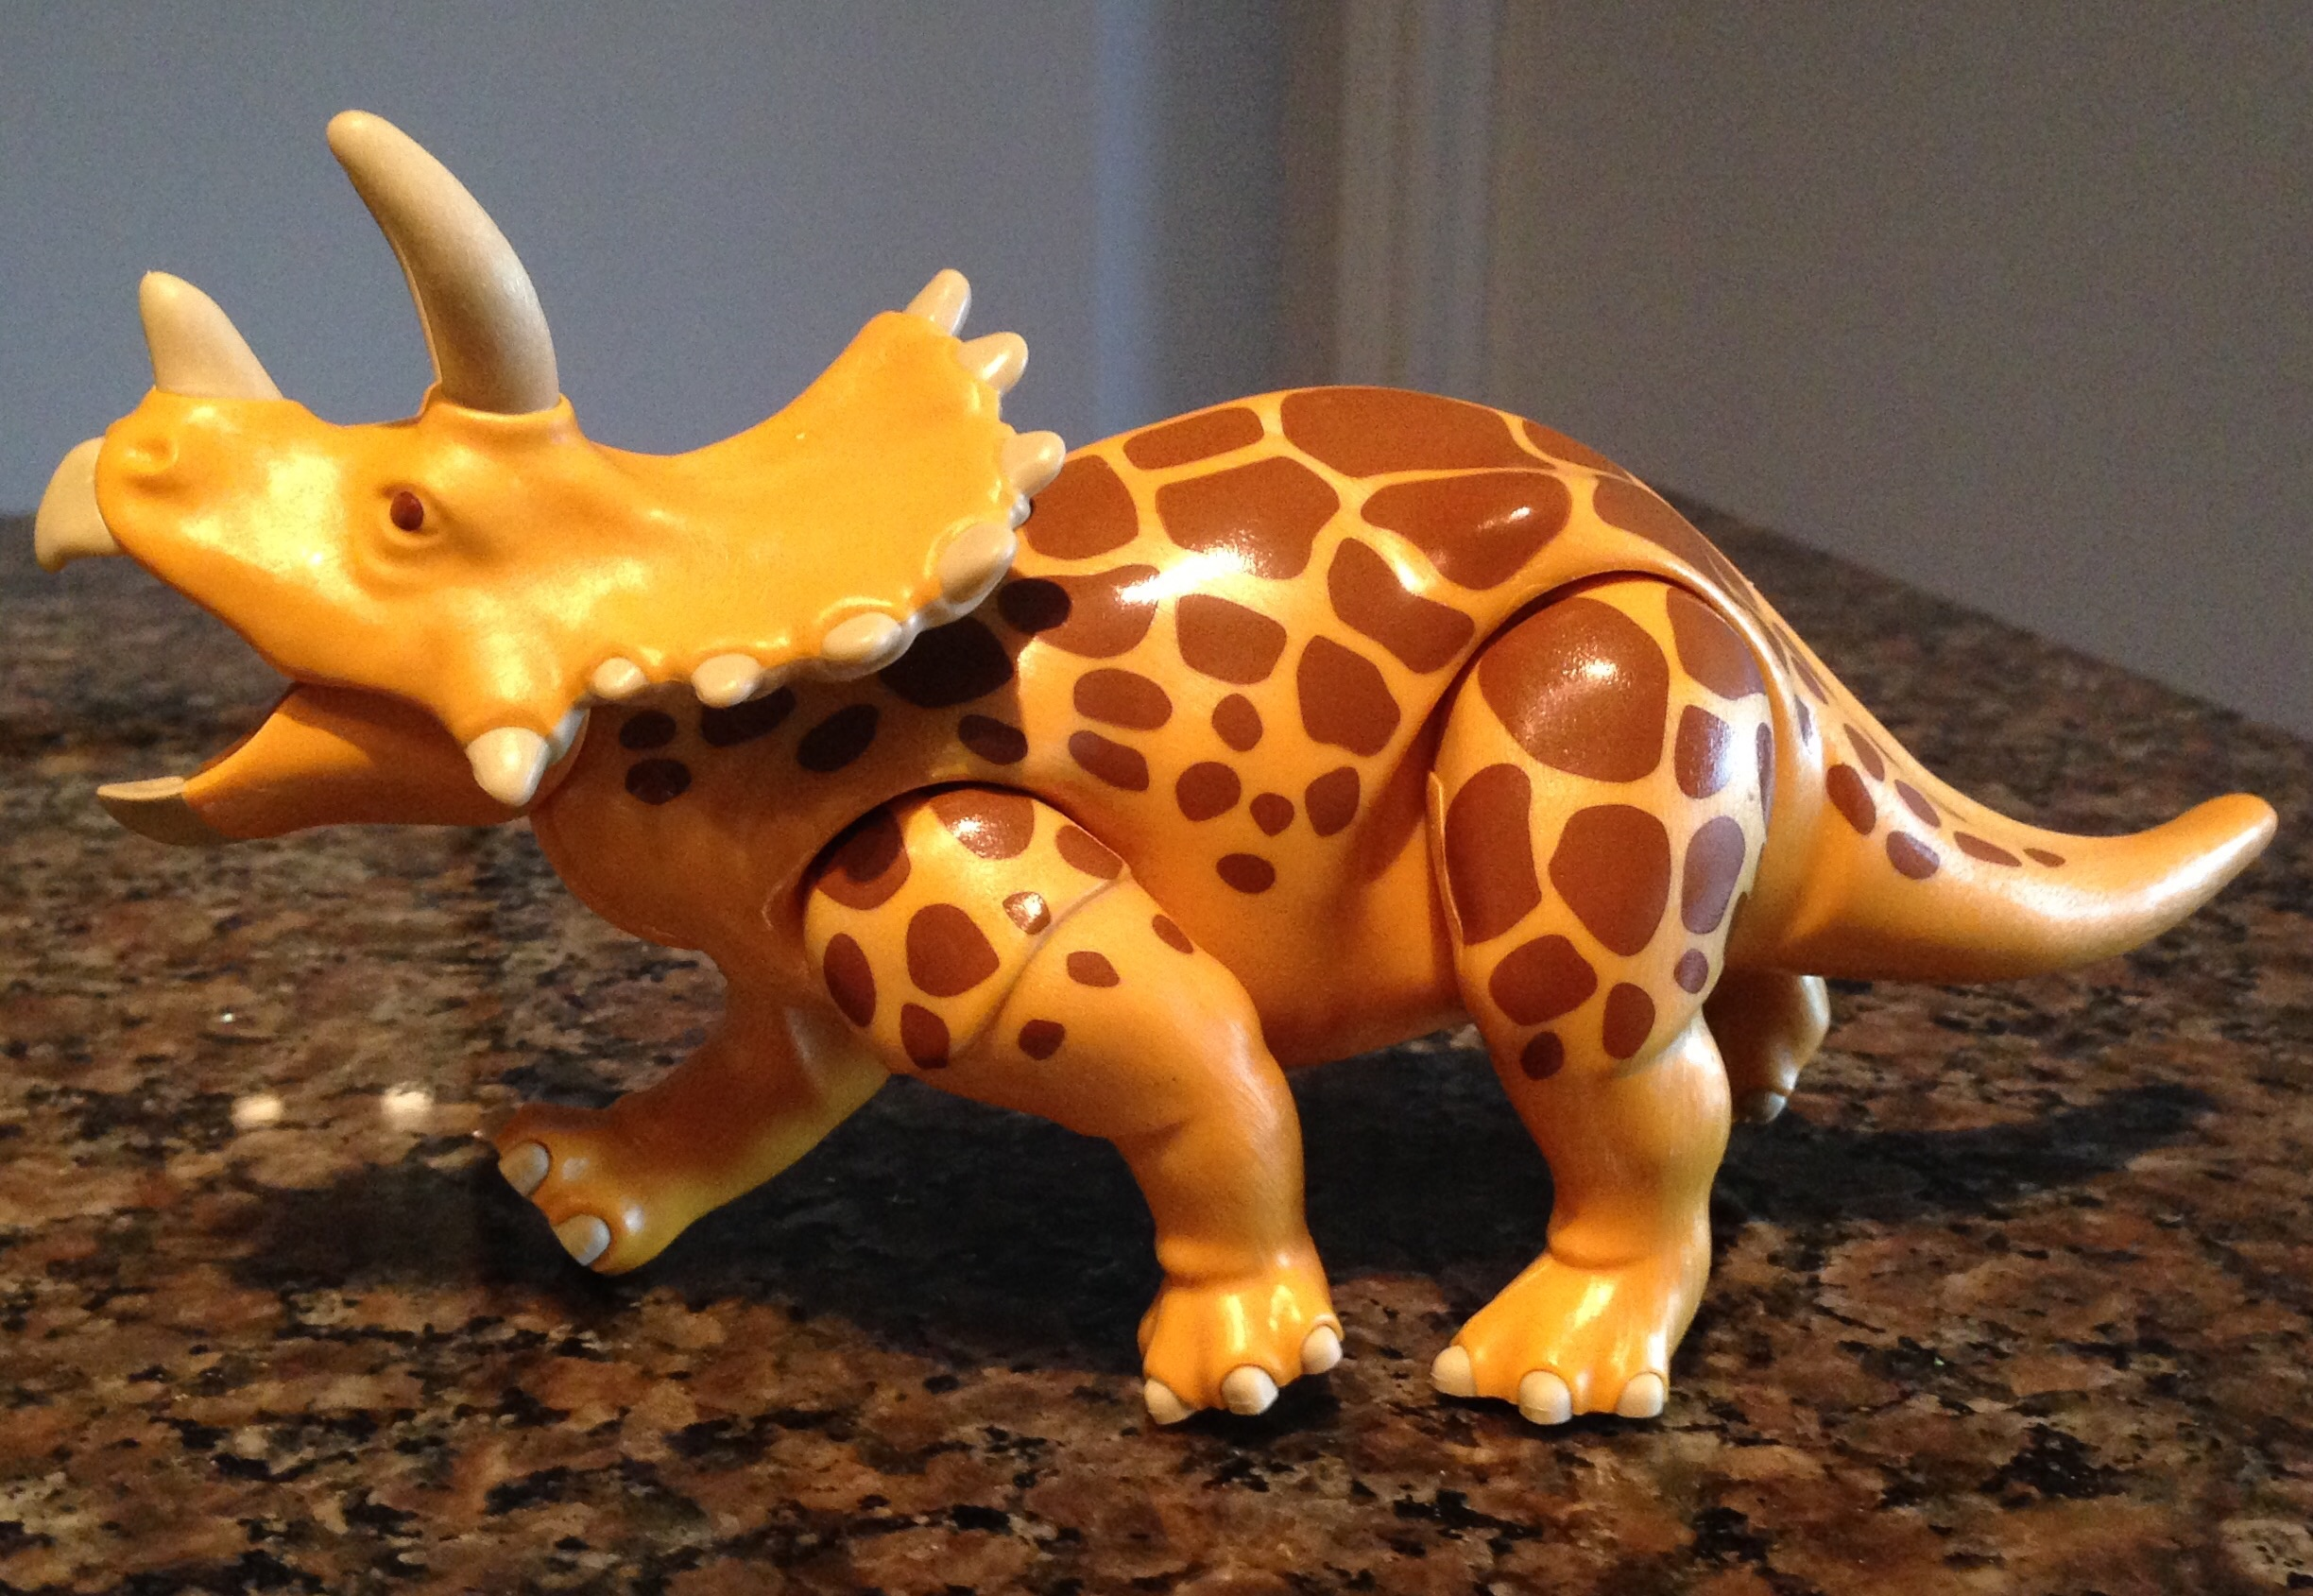 Triceratops playmobil dinosaur toy blog - Dinosaur playmobile ...